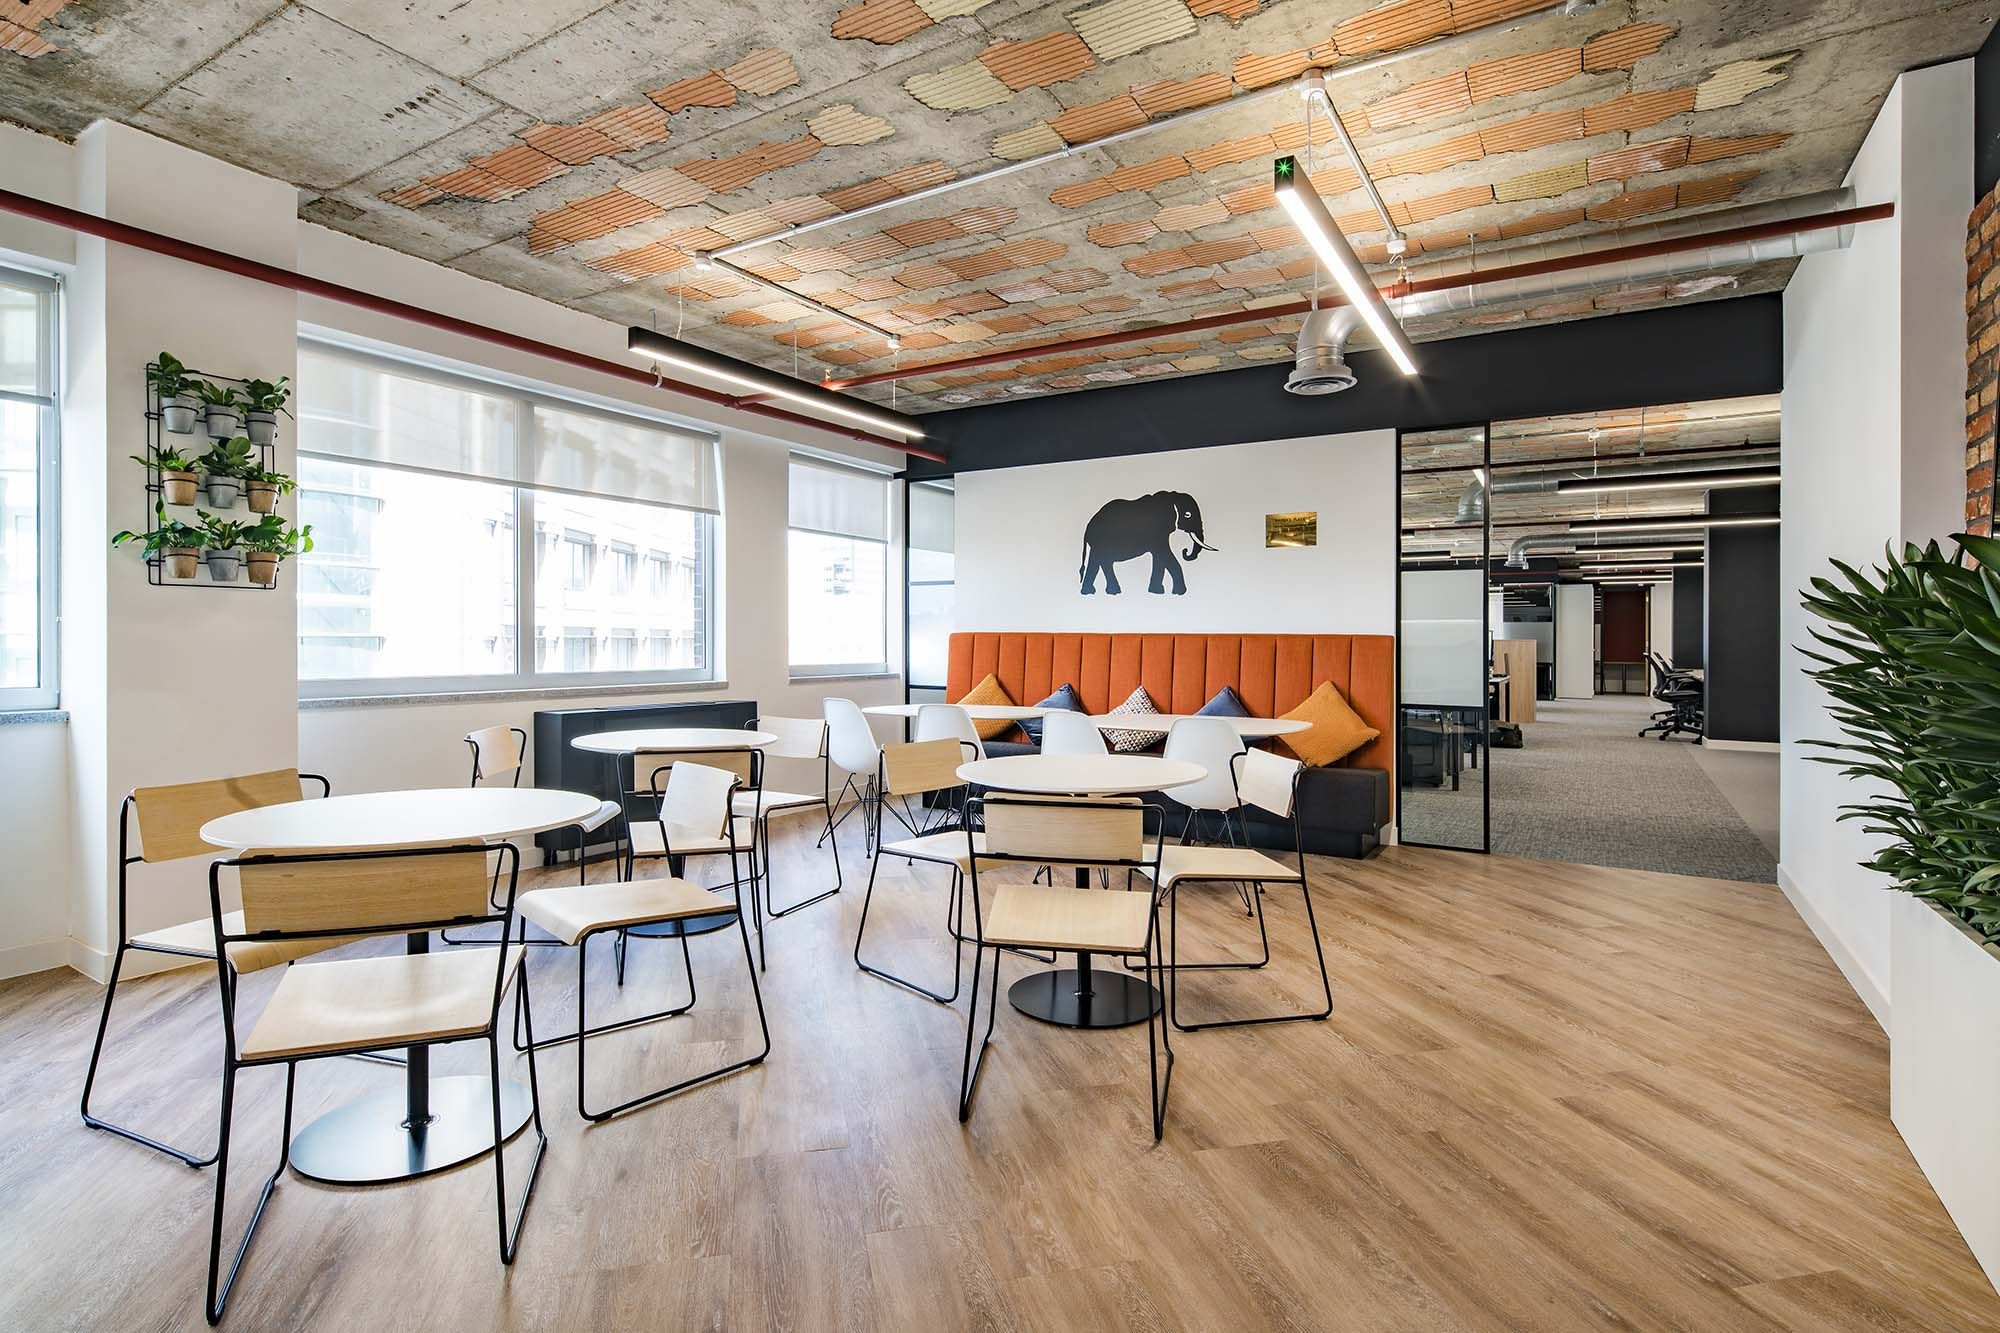 Assala Energy Breakout | Victoria house, Interior design furniture,  Industrial style office